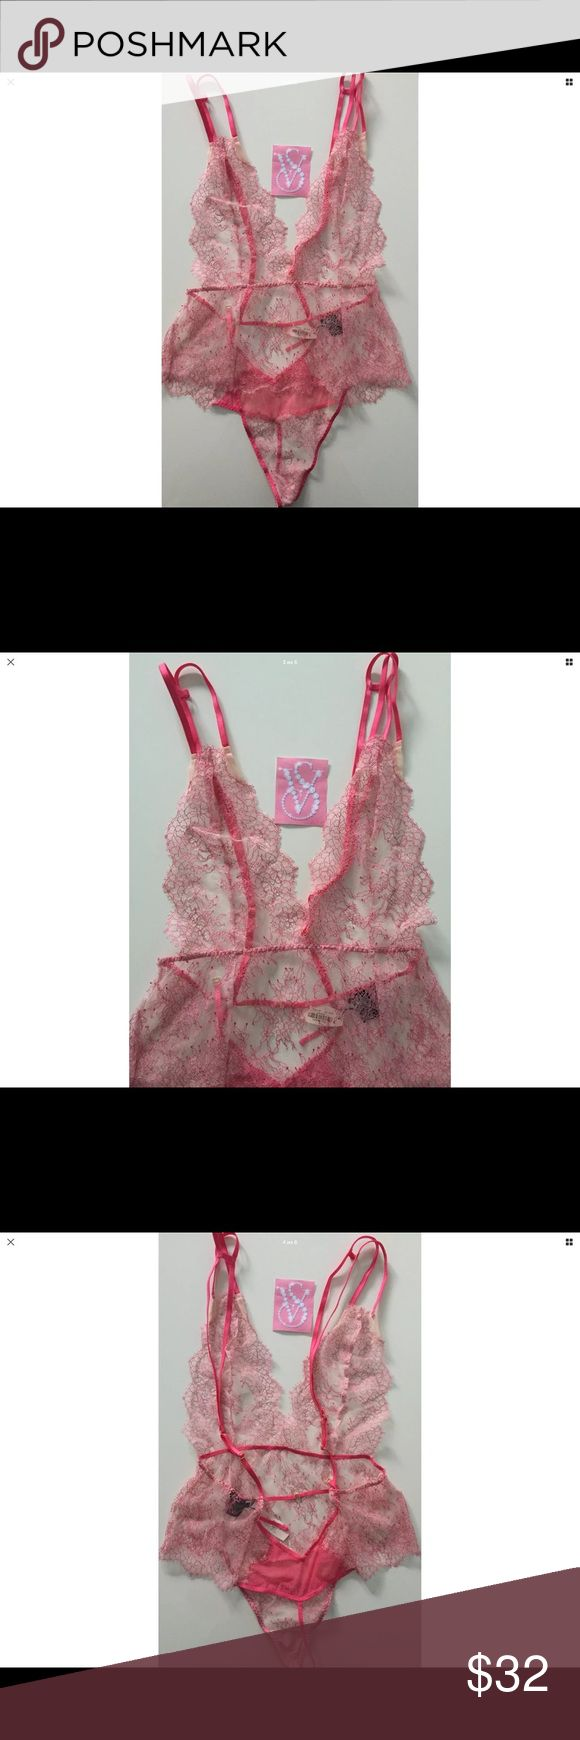 Victoria's Secret Lace Thong Teddy Lingerie M NWT  Size-Medium  No trades!!! No free shipping!!! No holds!!! PRICE IS FIRM Victoria's Secret Intimates & Sleepwear Chemises & Slips